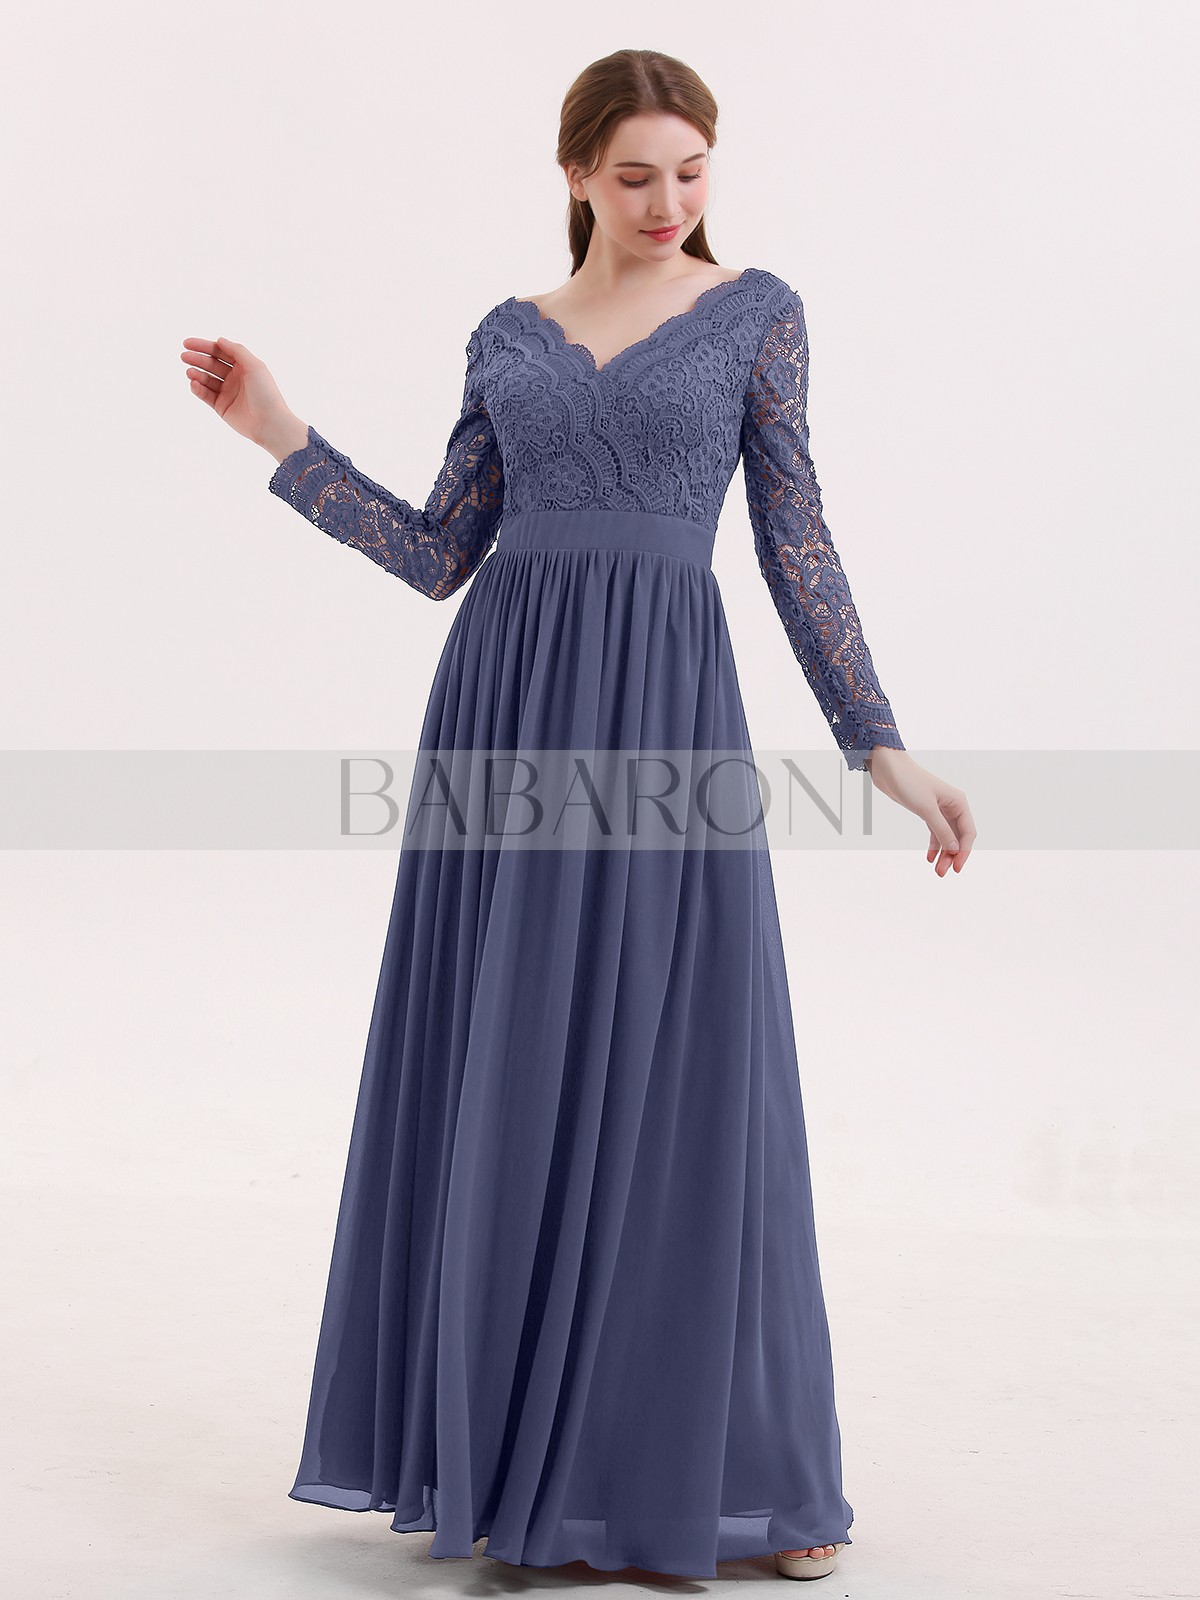 127f6a2e047 Stormy Alina V Neck Lace and Chiffon Dress with Long Sleeves